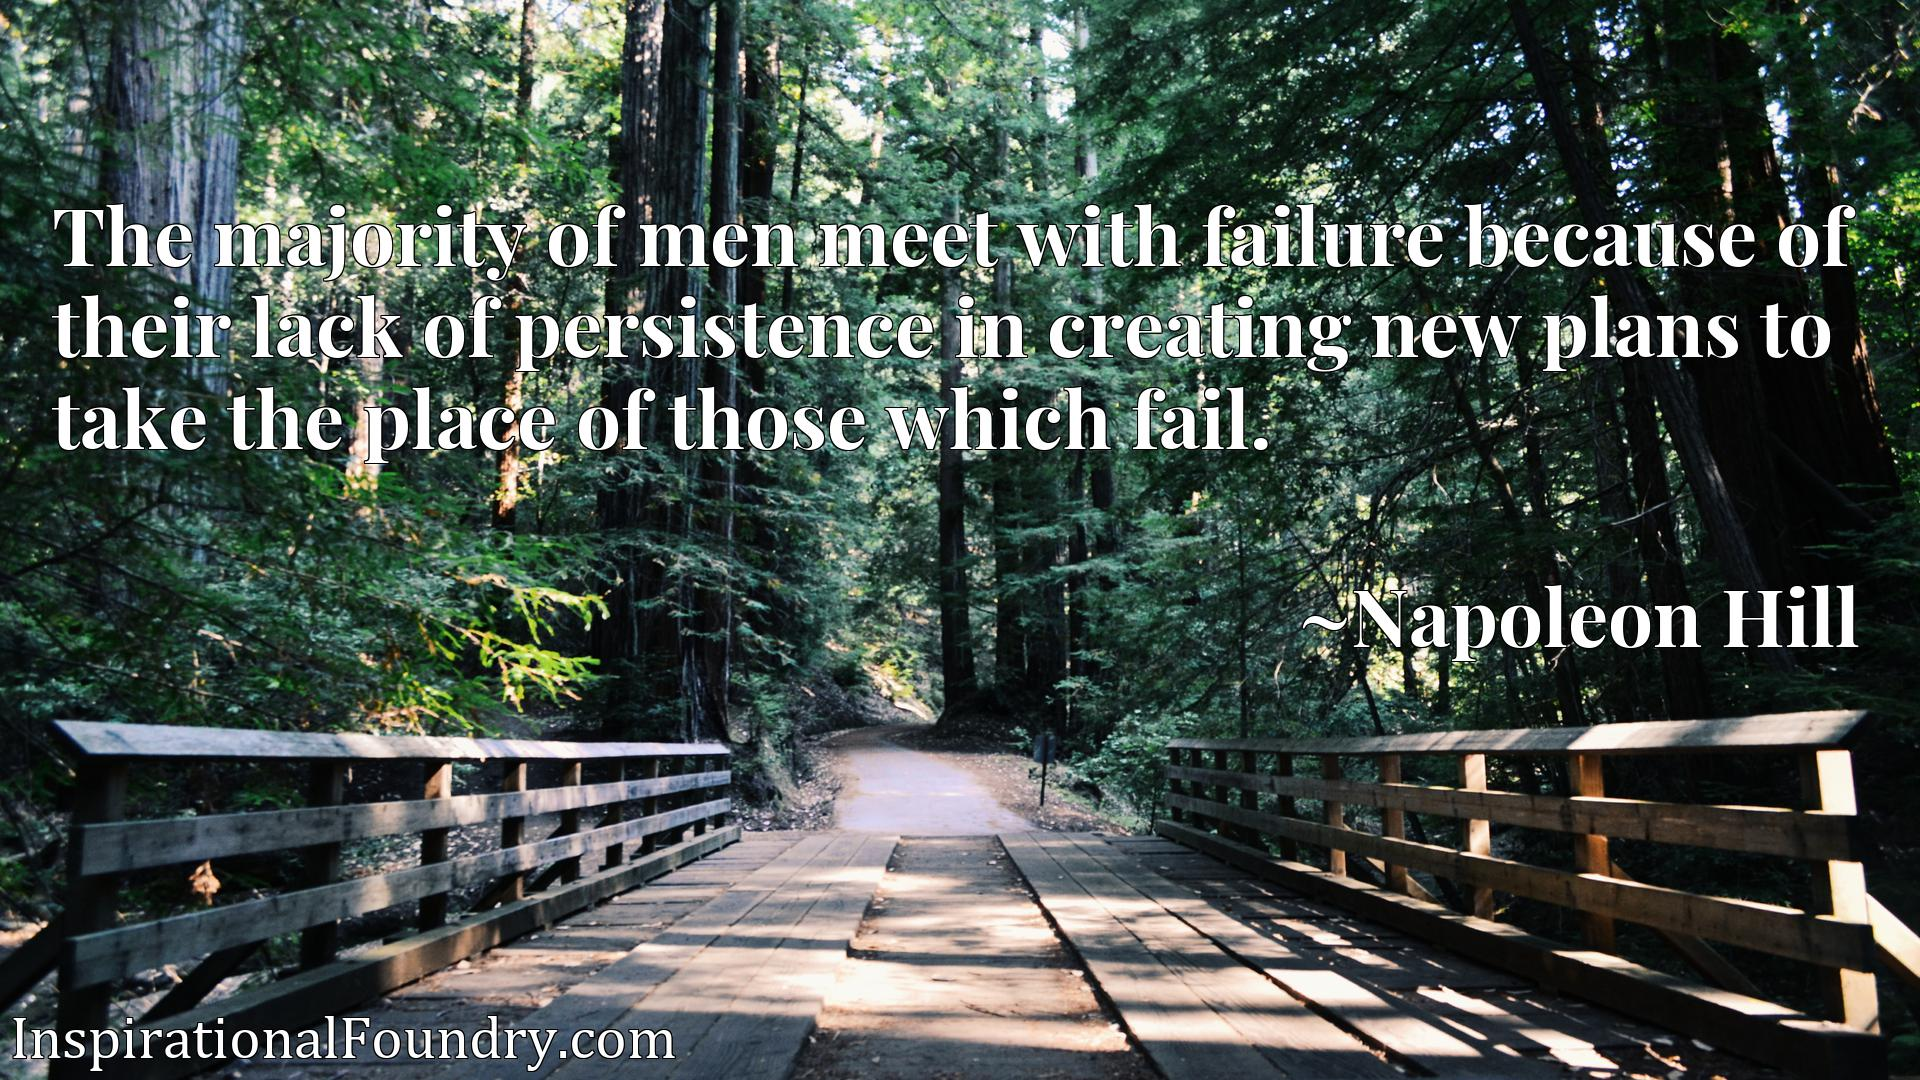 The majority of men meet with failure because of their lack of persistence in creating new plans to take the place of those which fail.